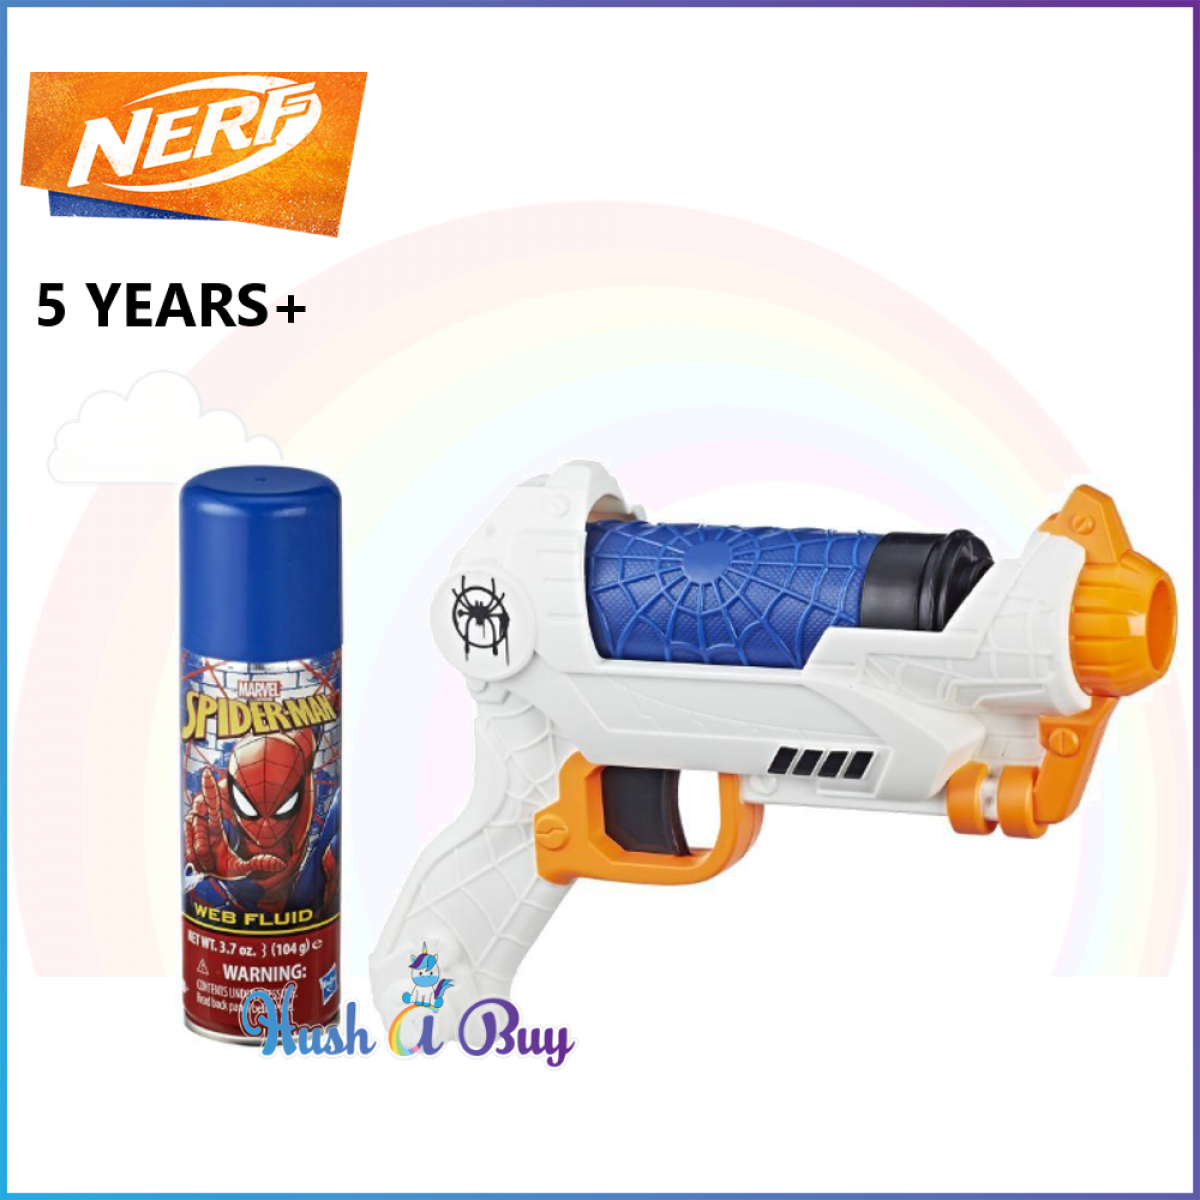 Nerf Spider-Noir SPD Movie New York Super Web Blaster